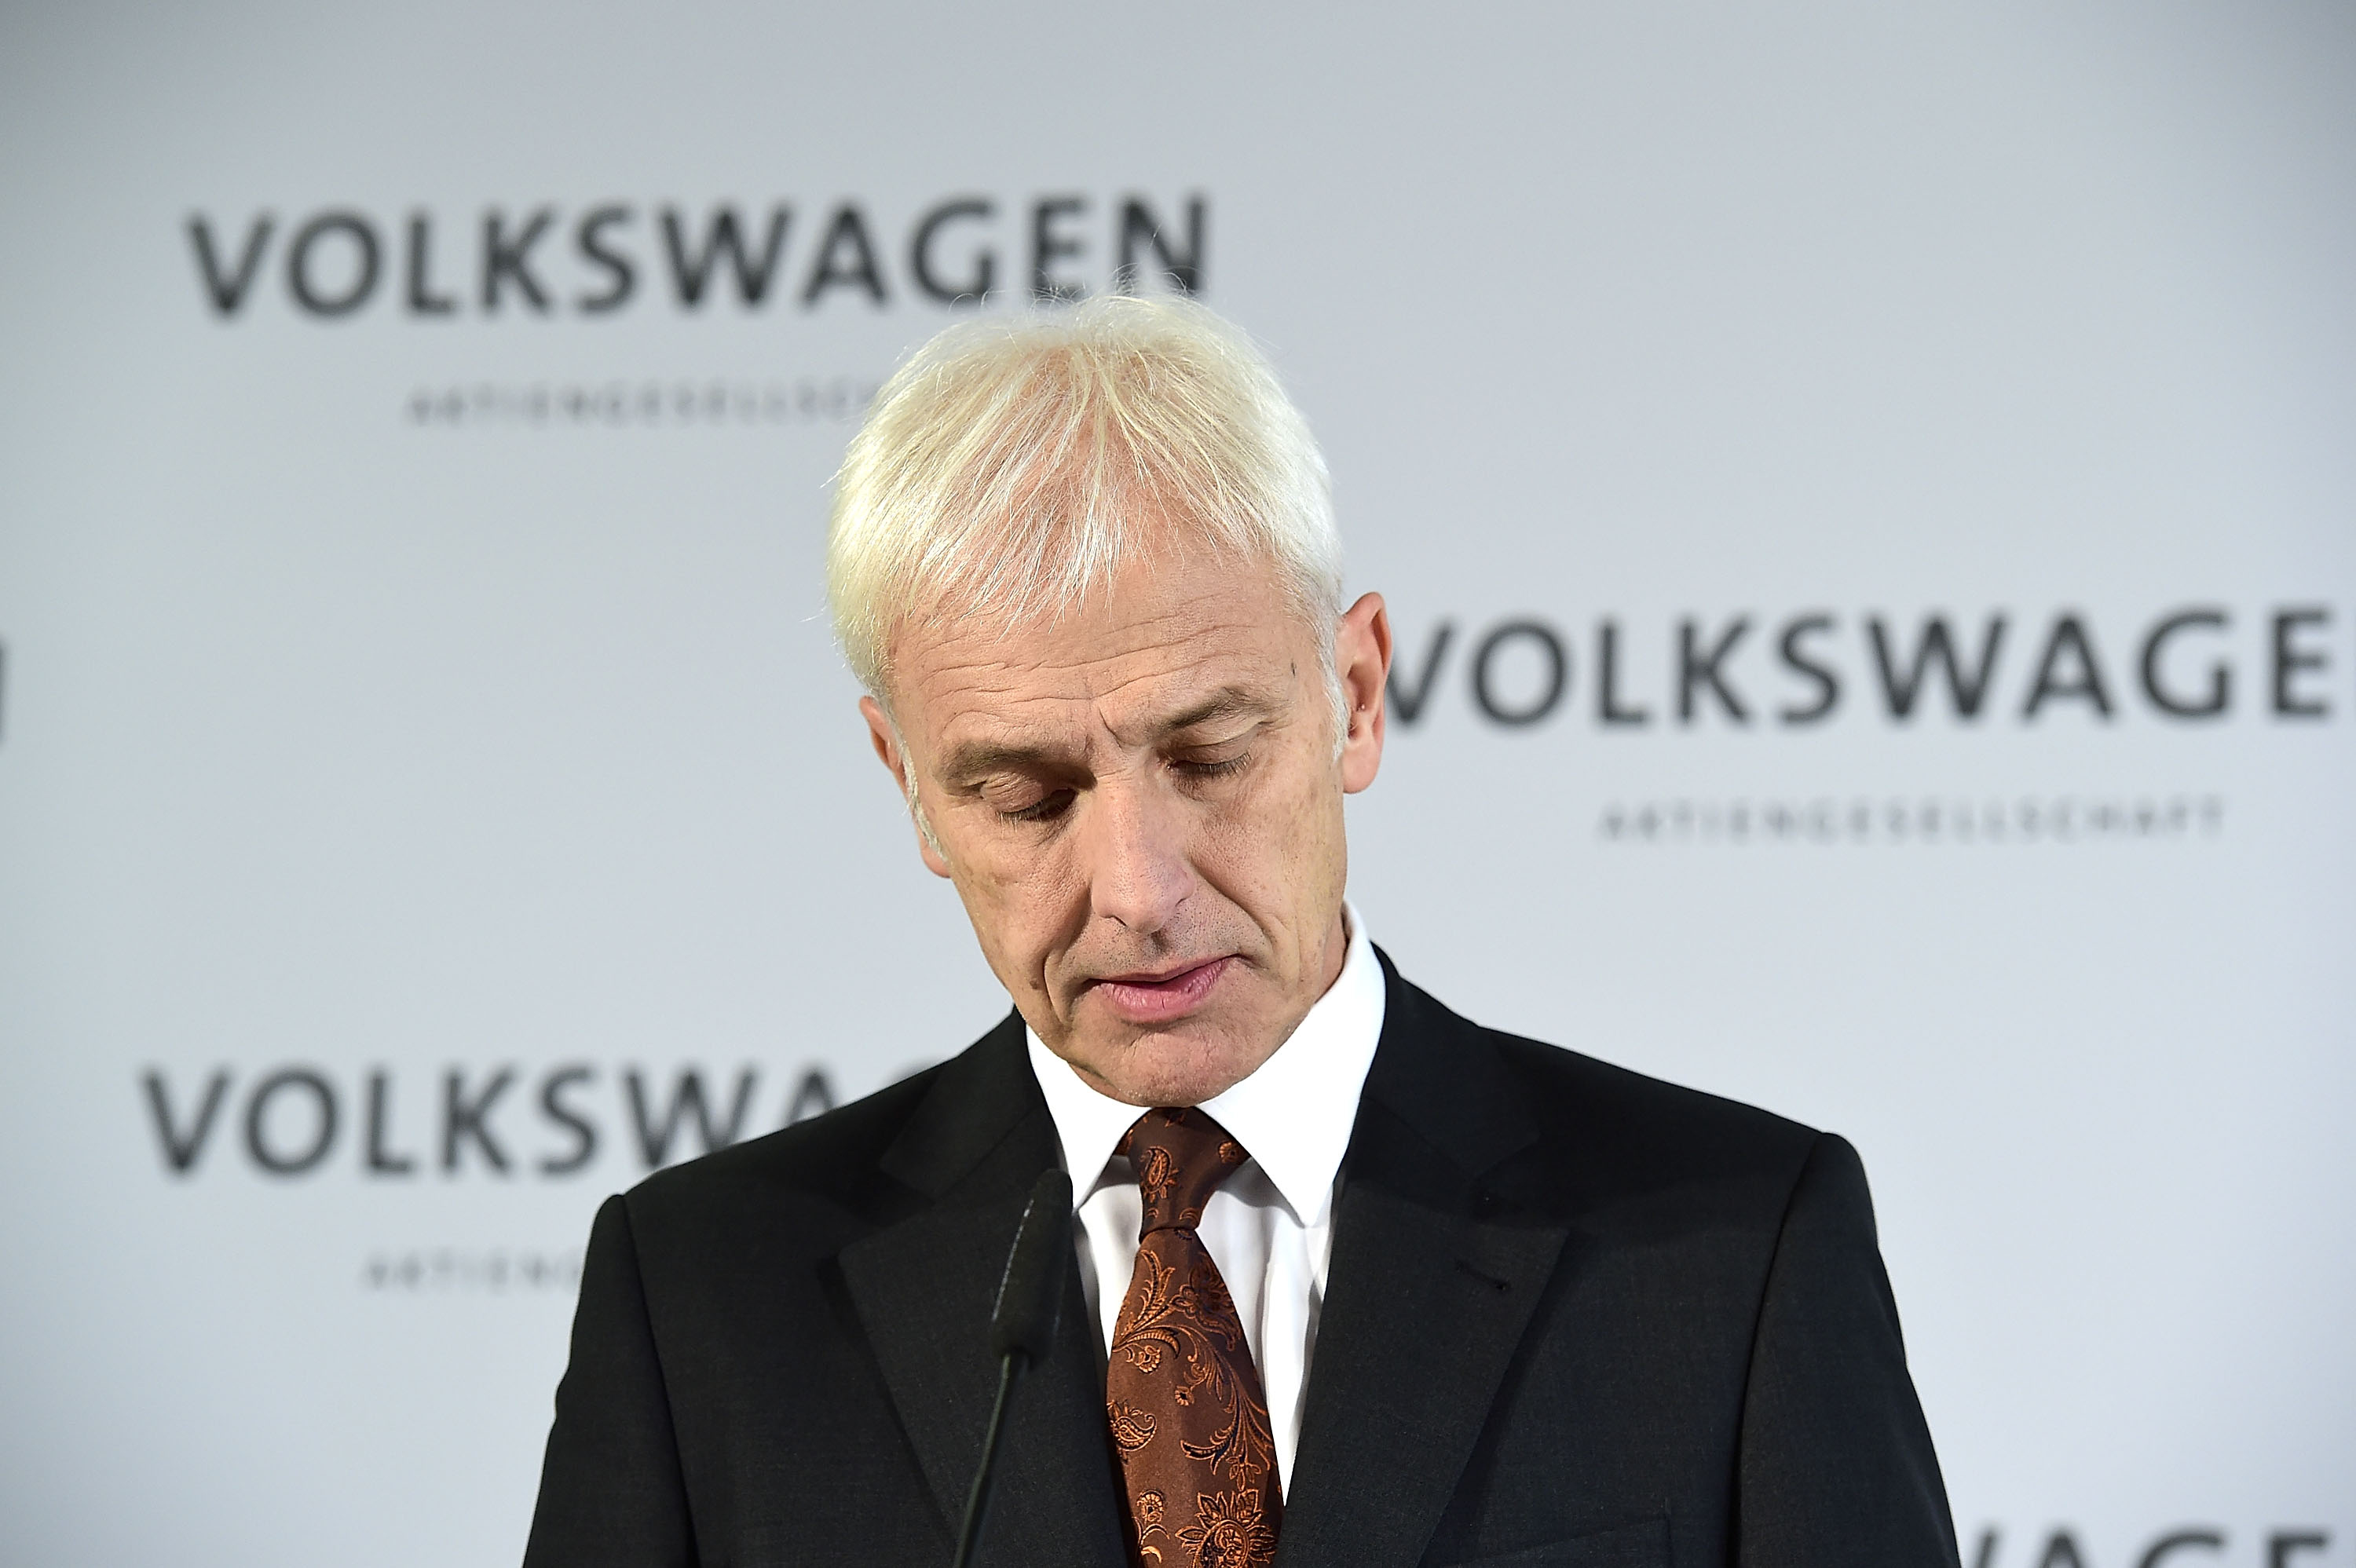 Matthias Mueller, CEO of Volkswagen Group, speaks to the media following a meeting of high-ranking Volkswagen managers on November 20, 2015 in Wolfsburg, Germany.